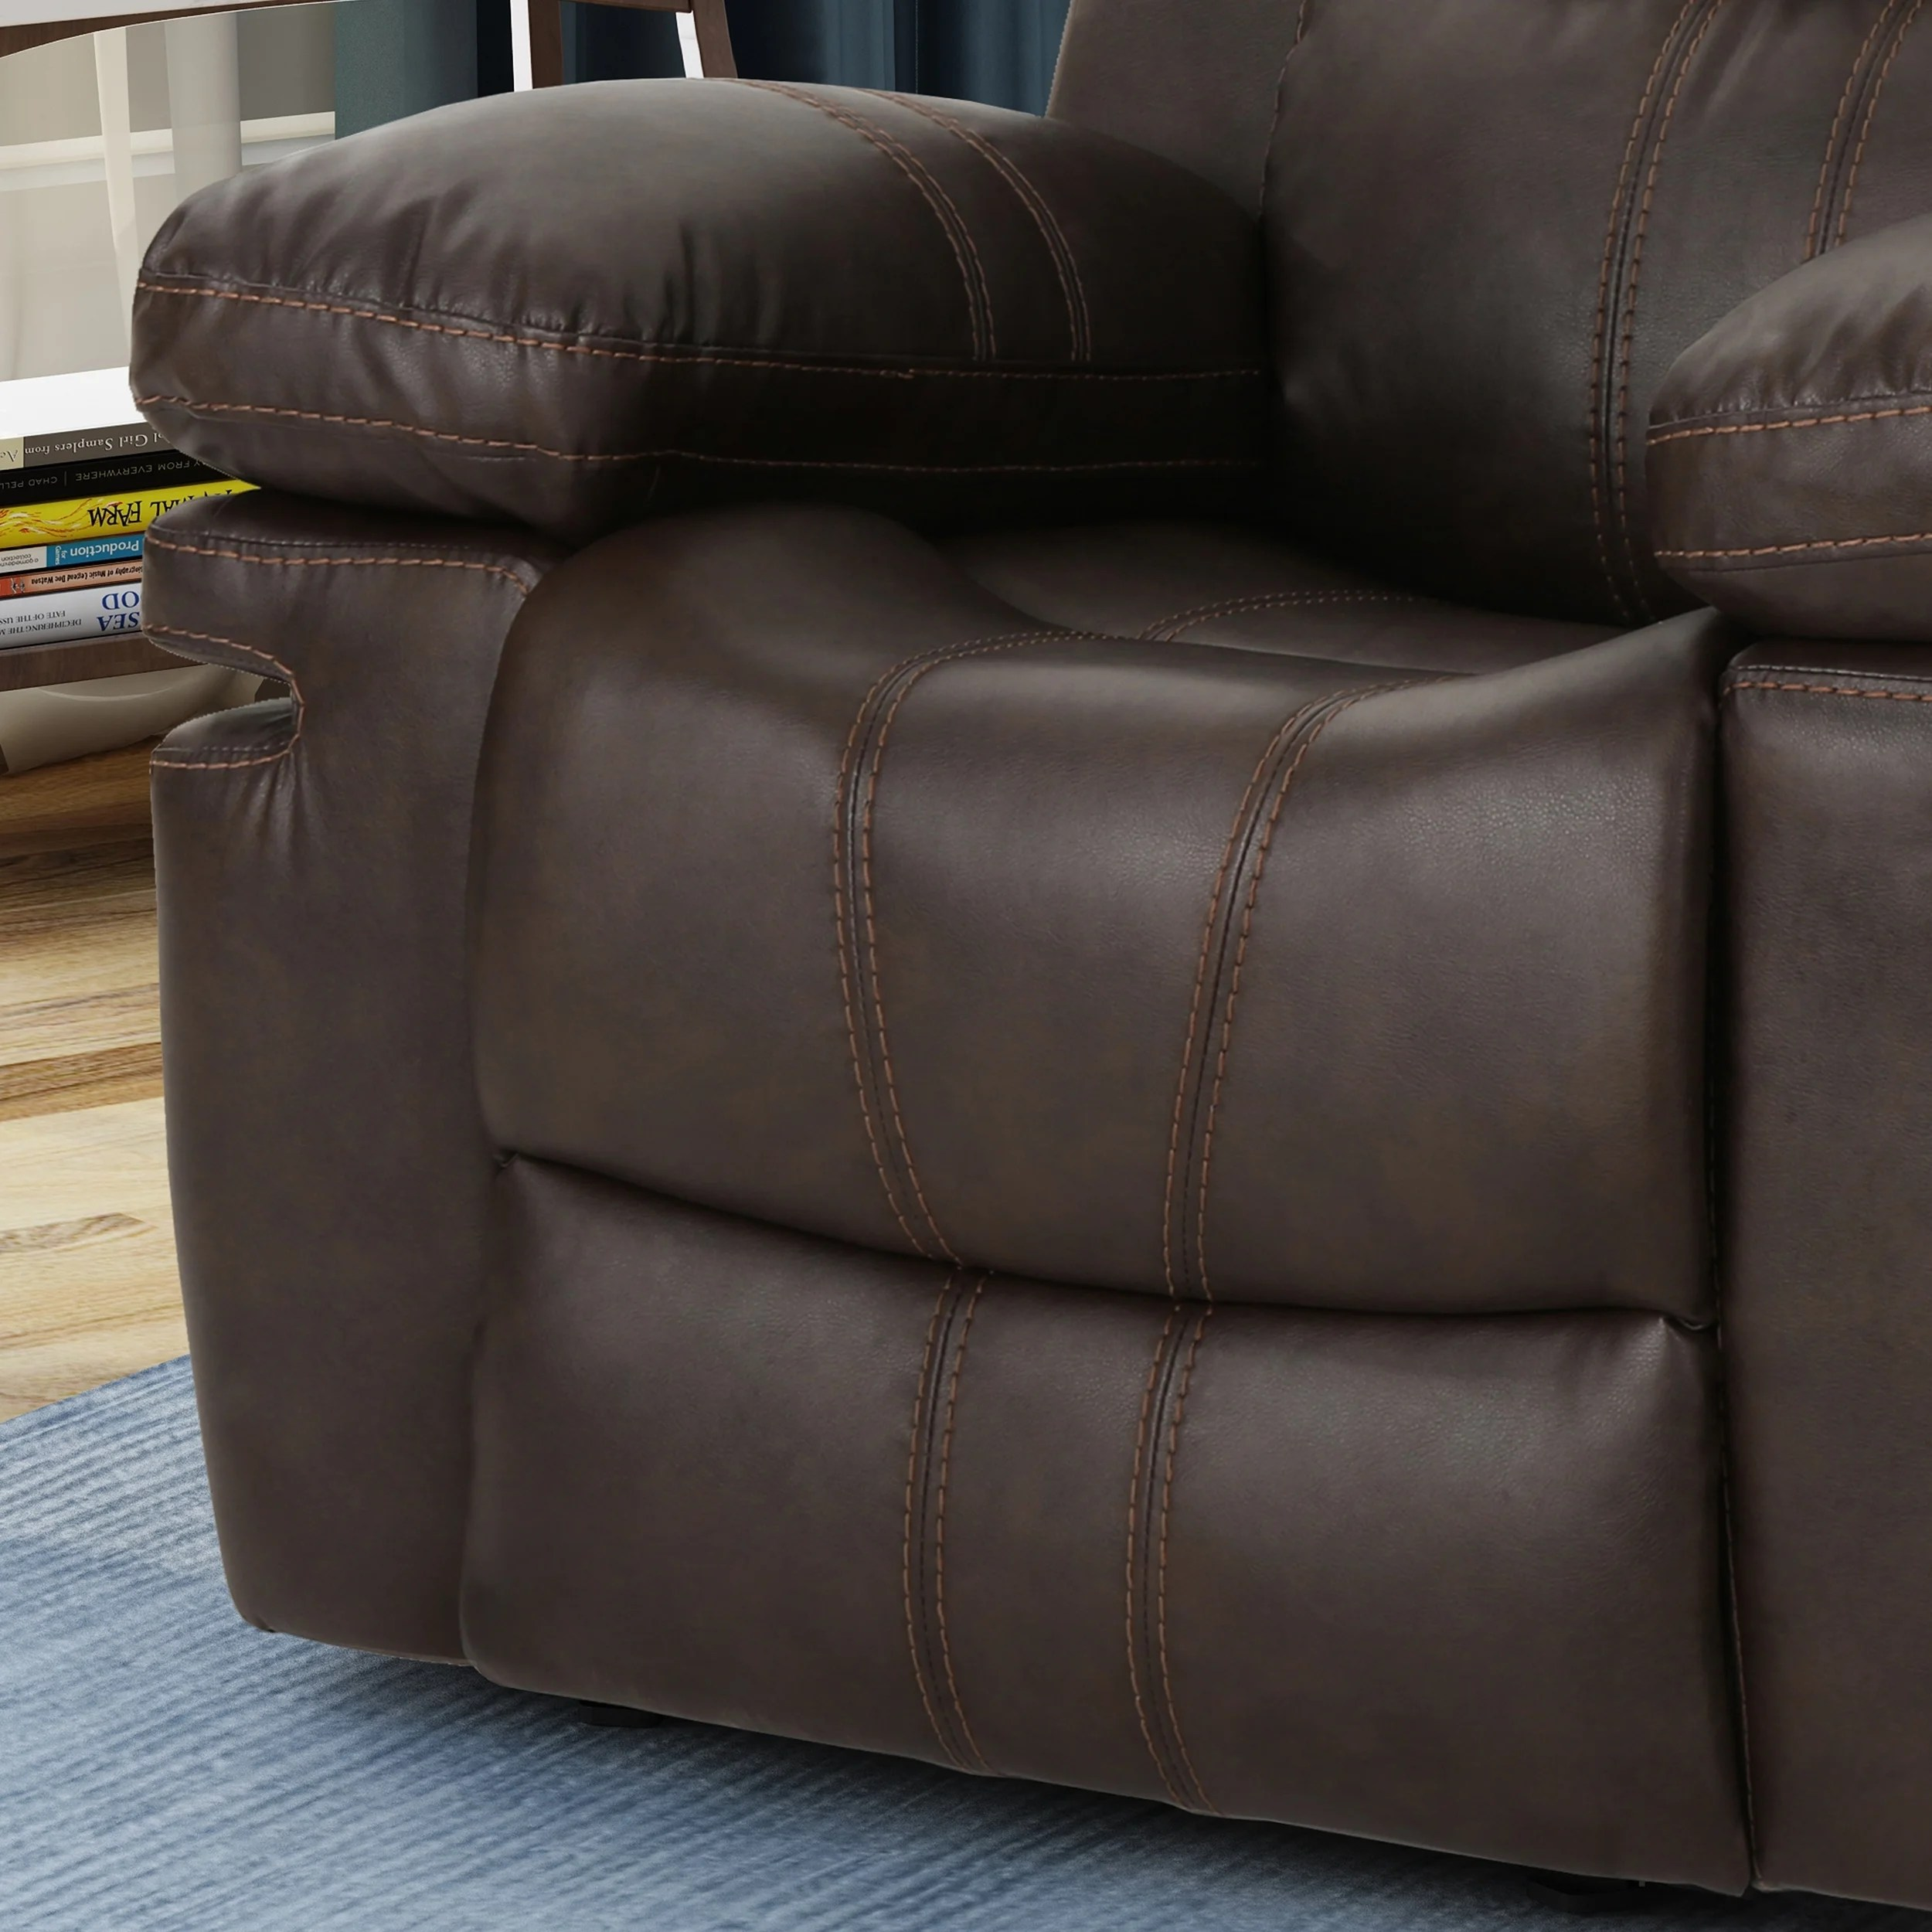 darvis leather recliner club chair brown christopher knight home outdoor canopy evelyna classic gliding by